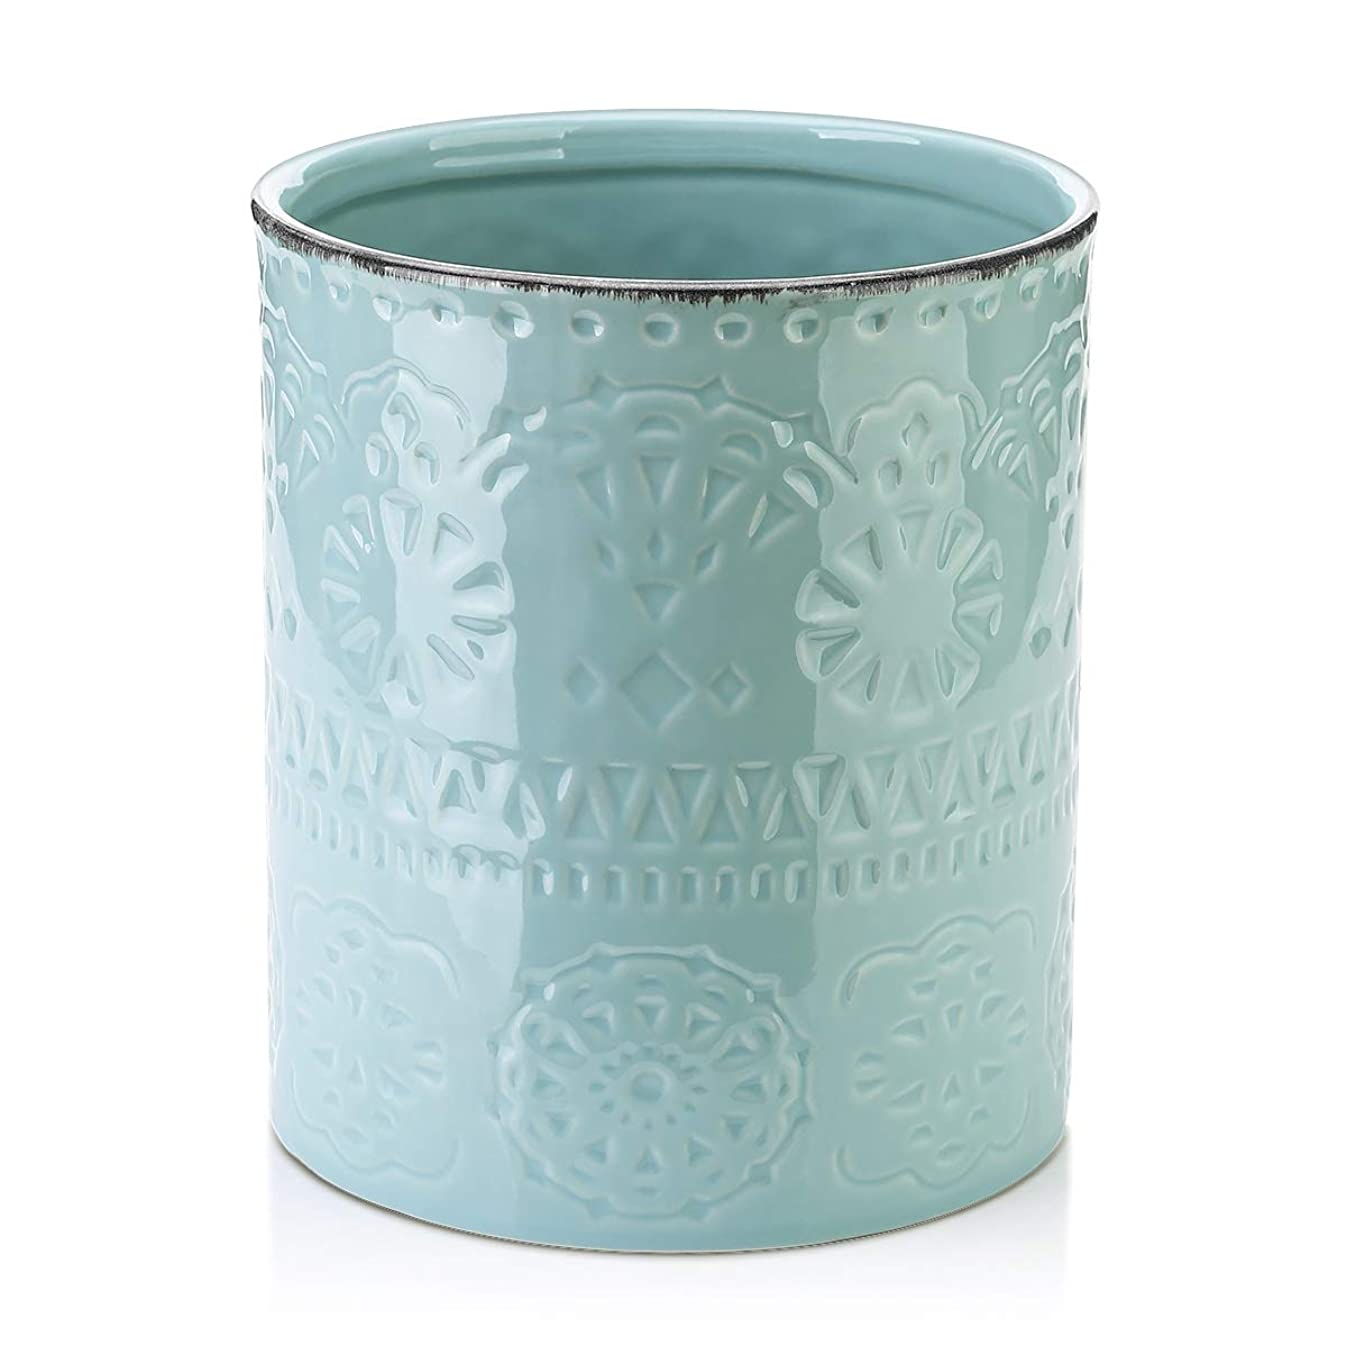 LIFVER Fine Embossed Ceramic Crock Utensil Holder, 7.2